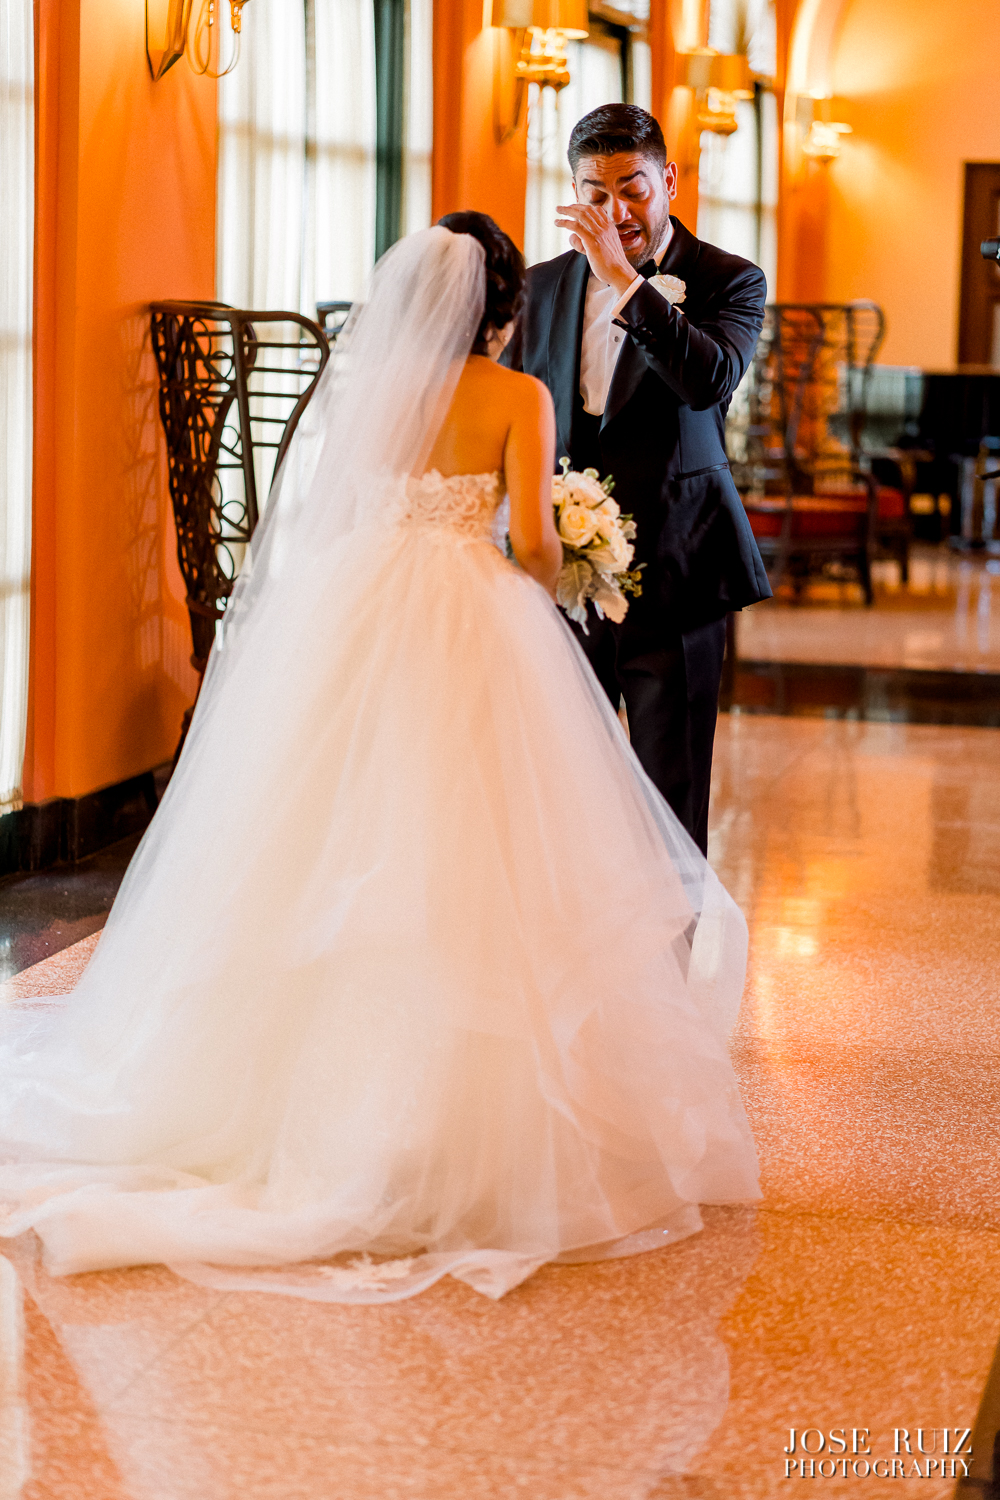 Jose Ruiz Photography- Madalyn & Joel-0034.jpg